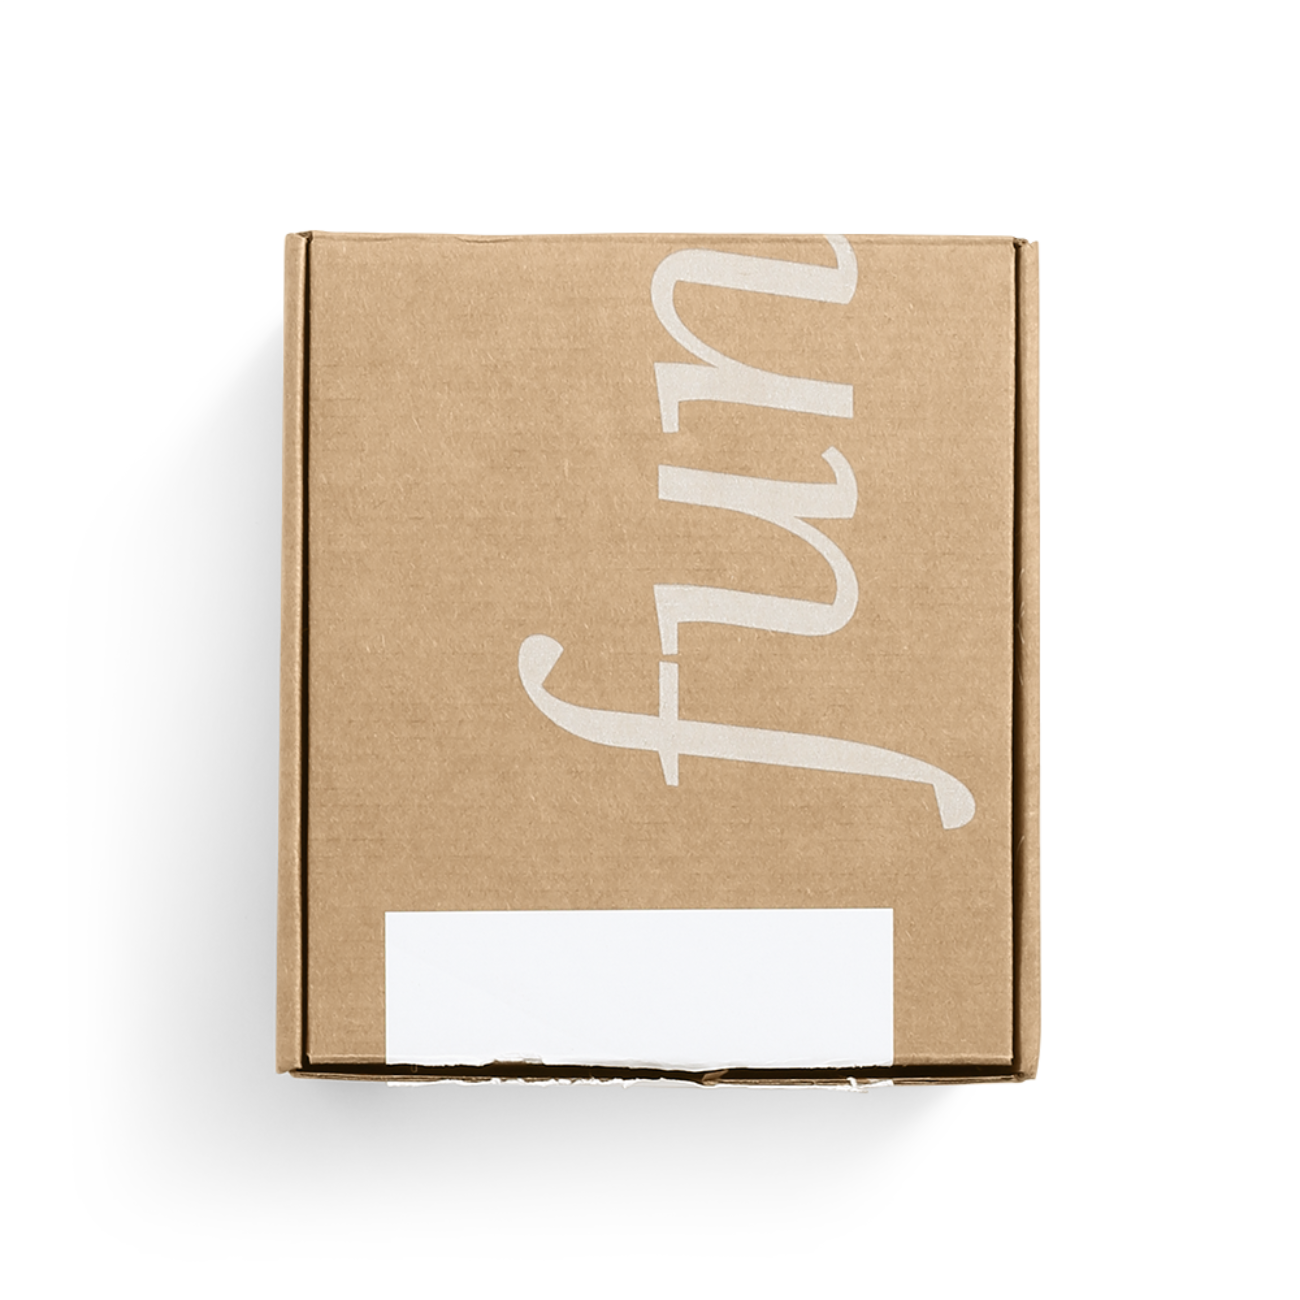 Custom roll end tuck top corrugated mailer box with roll end base, tuck top lid. Flexography on natural kraft liner.